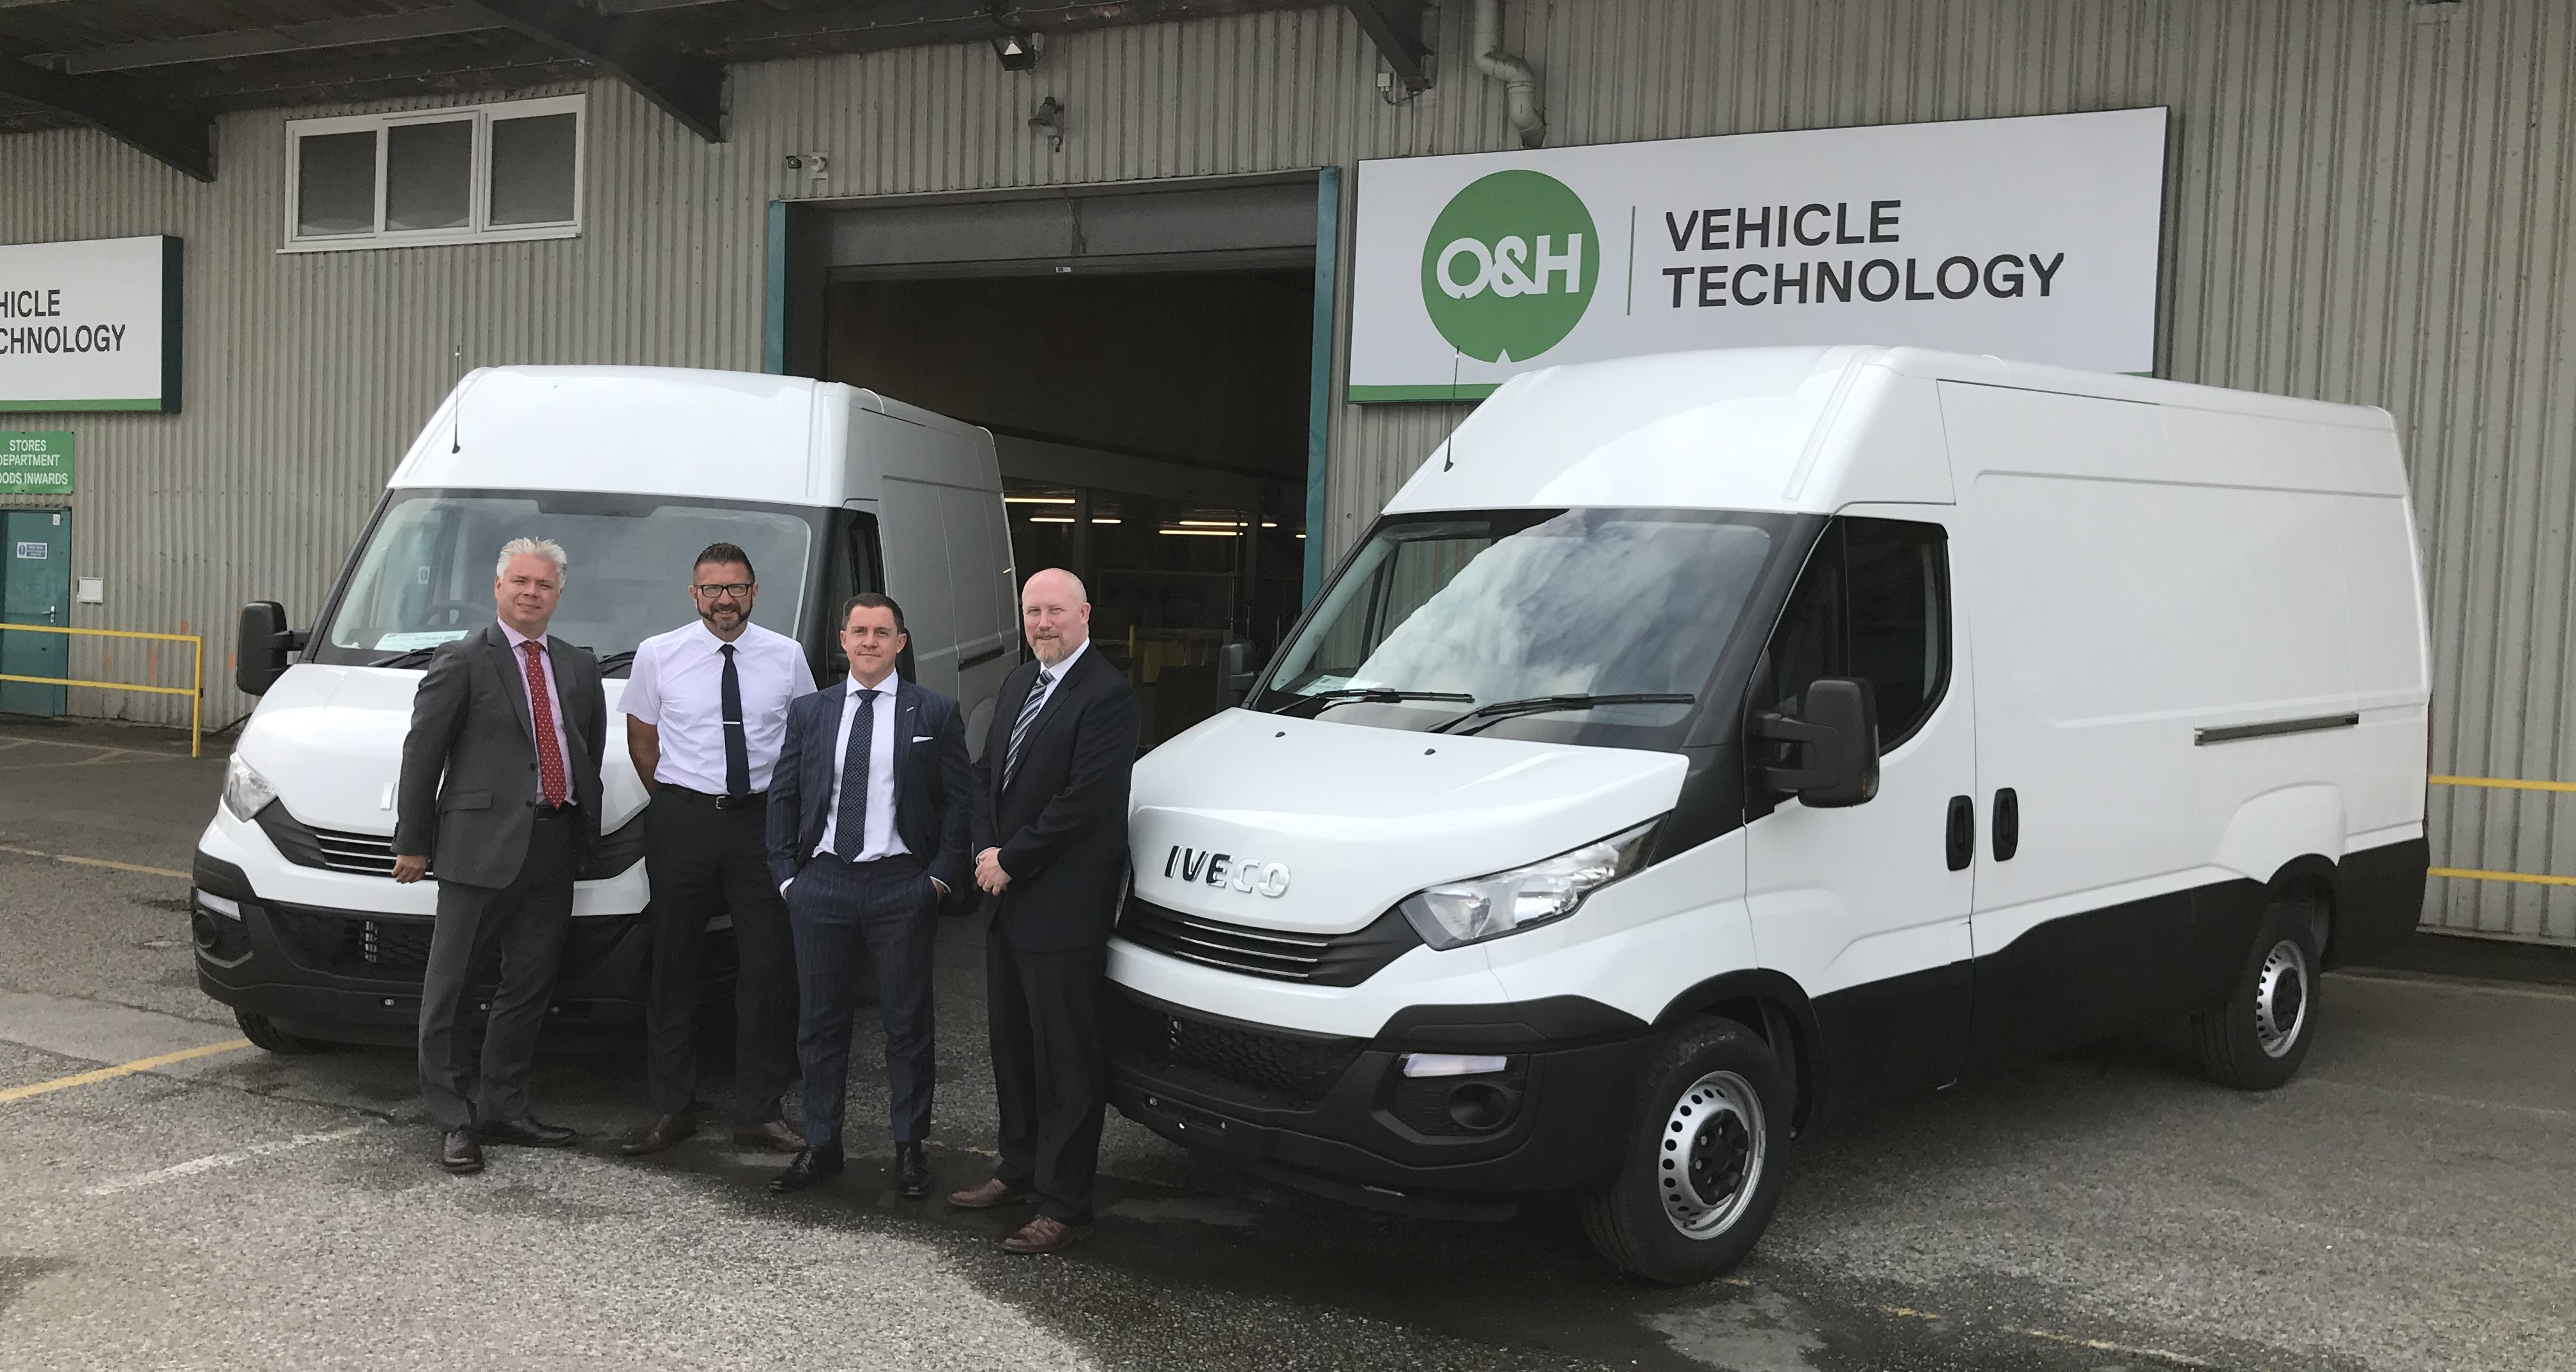 Production set to start at O&H Vehicle Technology